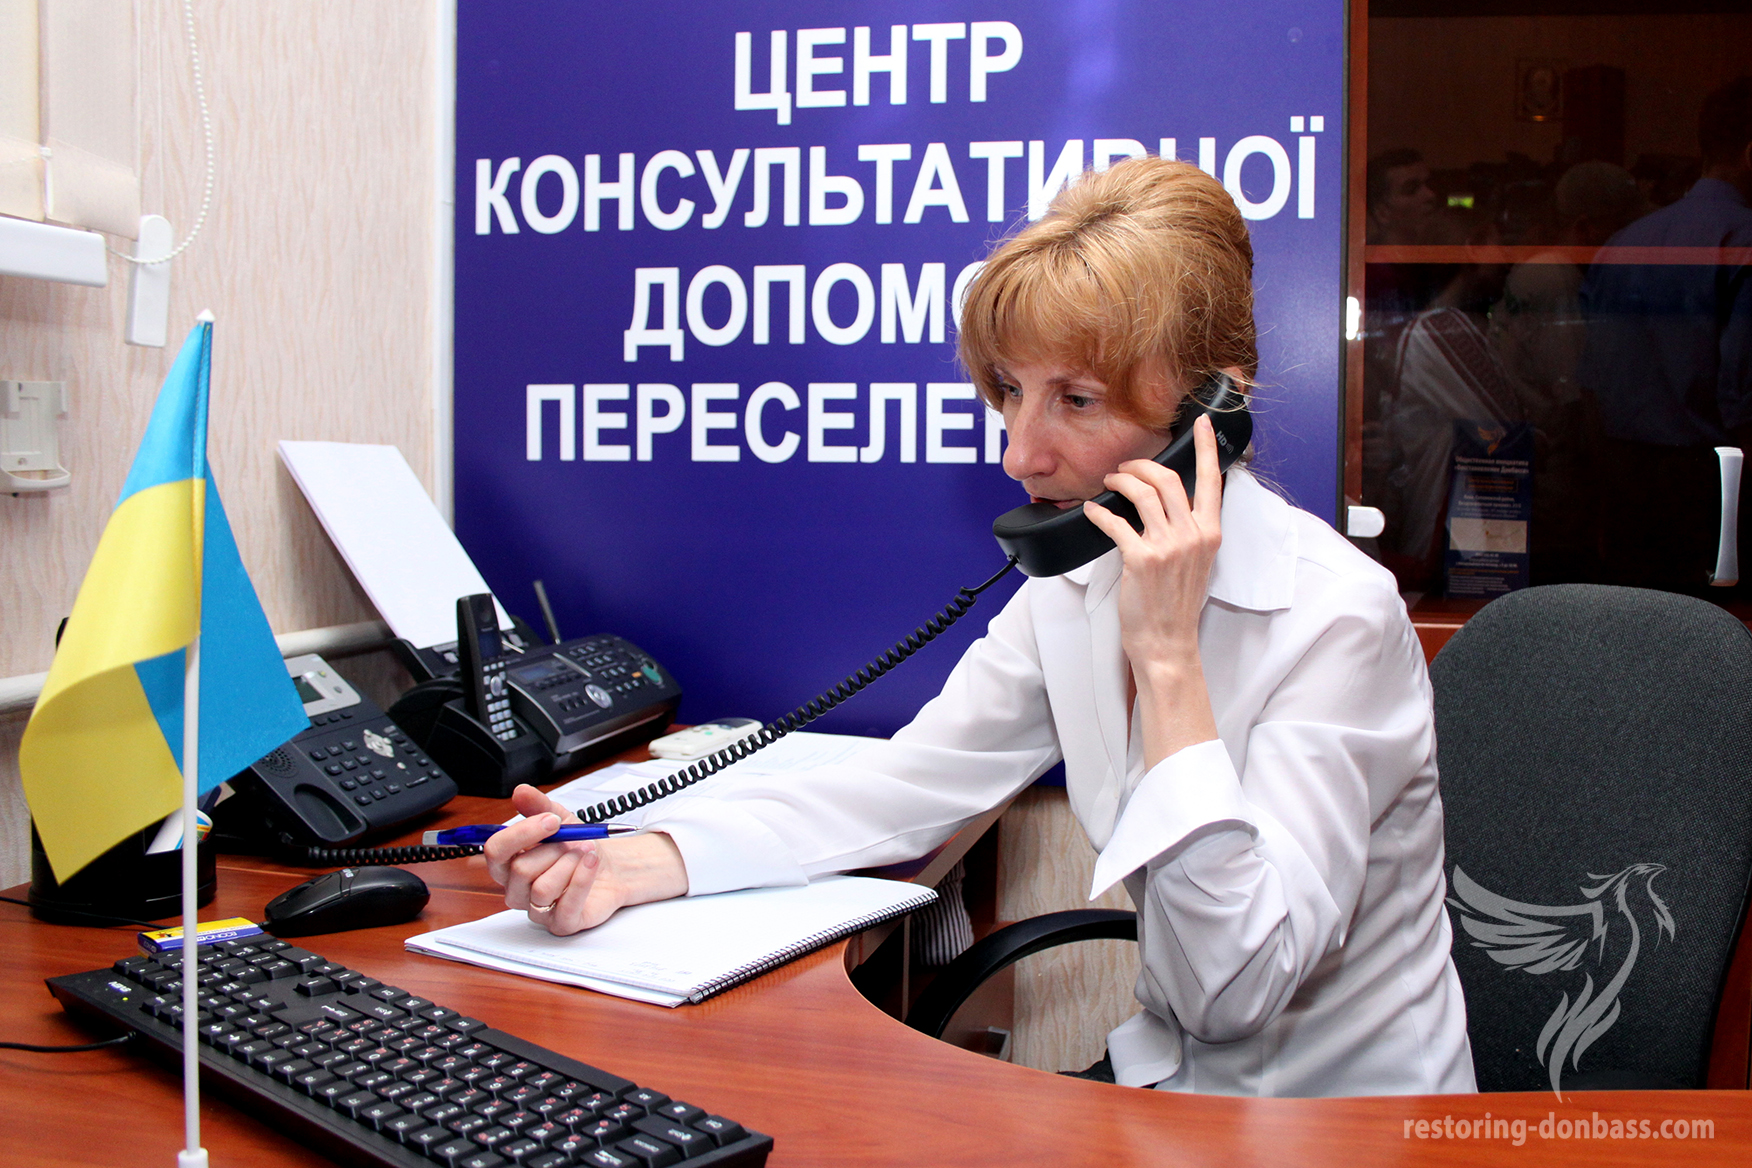 Operator of the hot line Irina Golina is giving advices to internally displaced person, 30.07.2015